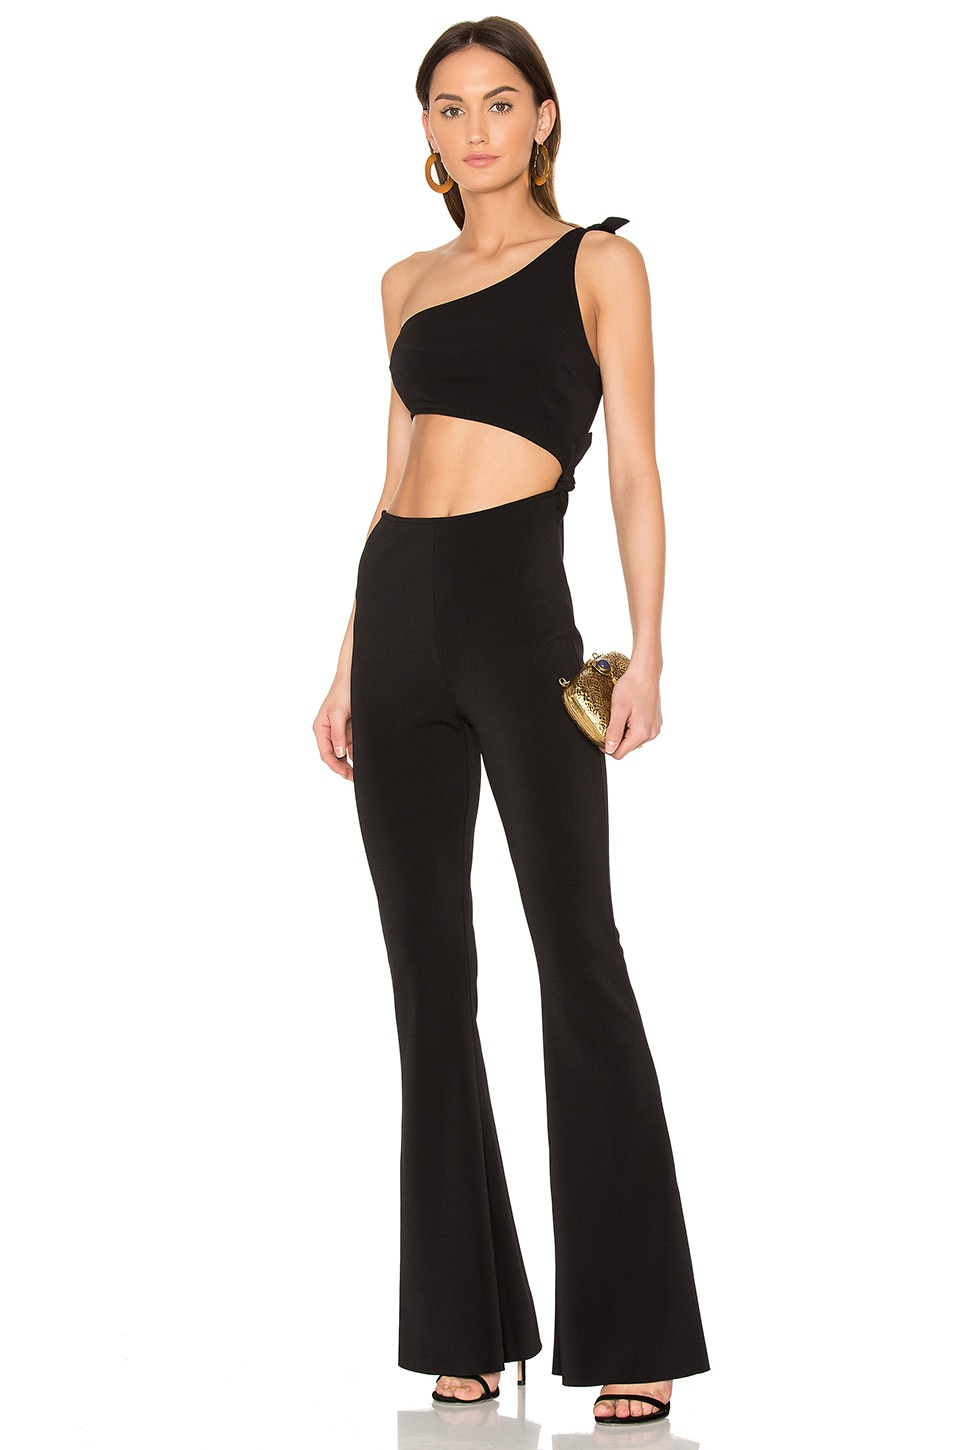 BEC&BRIDGE Onyx Jumpsuit in Black